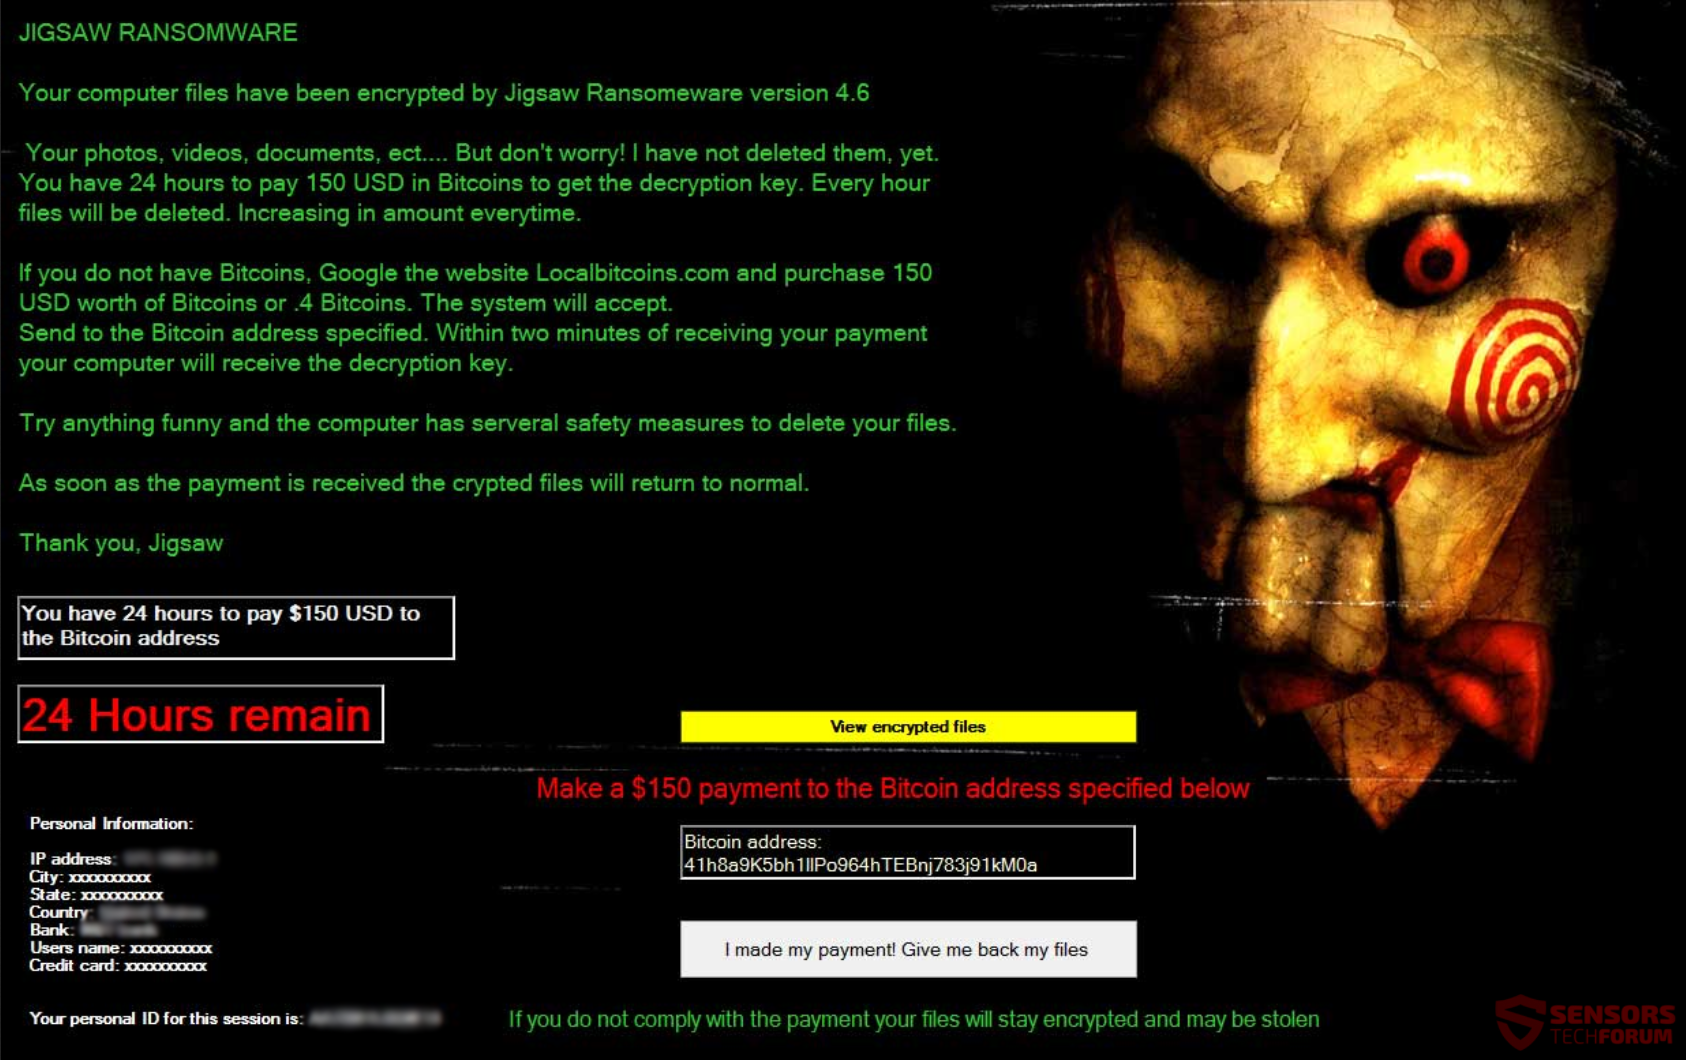 Jigsaw Ransomware 4.6 \u2013 Remove and Restore Your Data